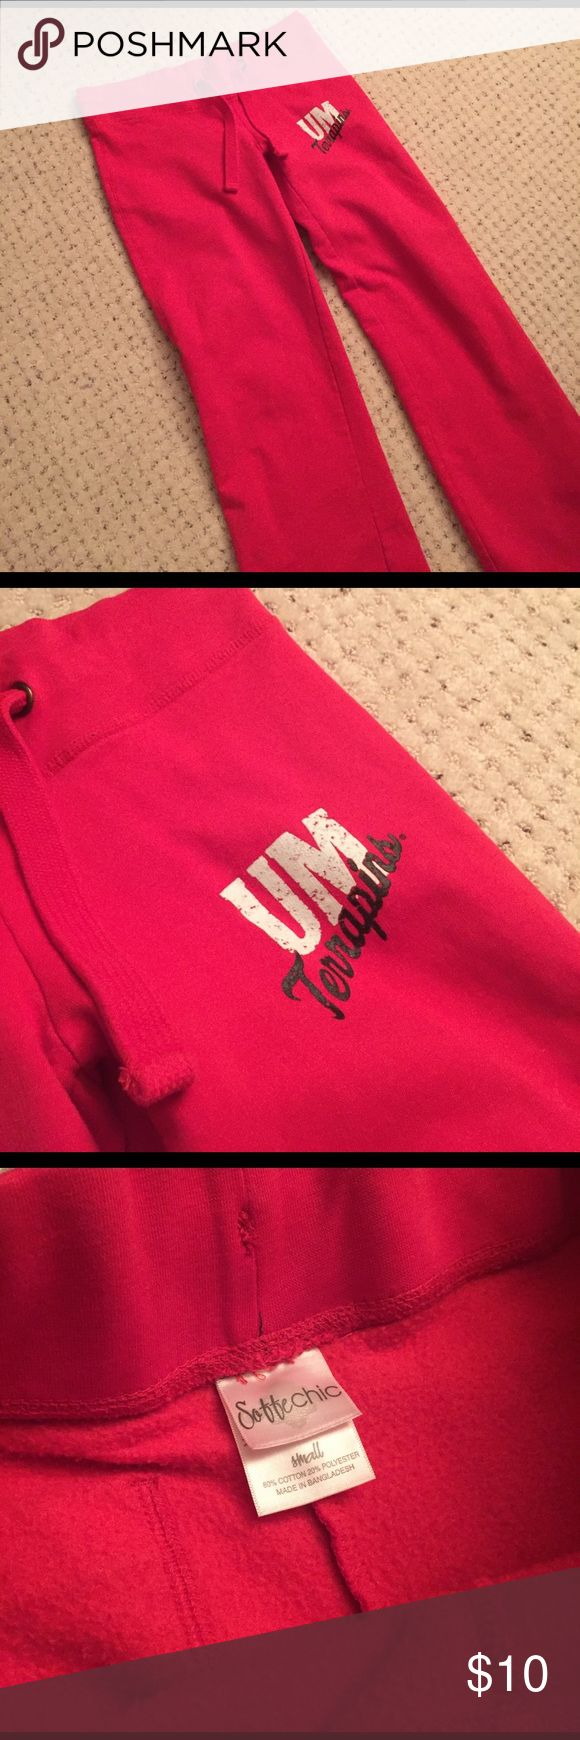 University of MD Terps Red Sweatpants These are great warm sweatpants lined with fleece like material. Size small, waistband adjustable with a string but still large for me as I have a small waist, I would say these fit better for someone with M-L in bottoms so you don't have to pull the string as it's quite thick! They're also about an inch or two too long on me (I'm 5'3 and Petite) and never bothered to get these tailored. Worn very few times, still in good condition!!! Price negotiable…